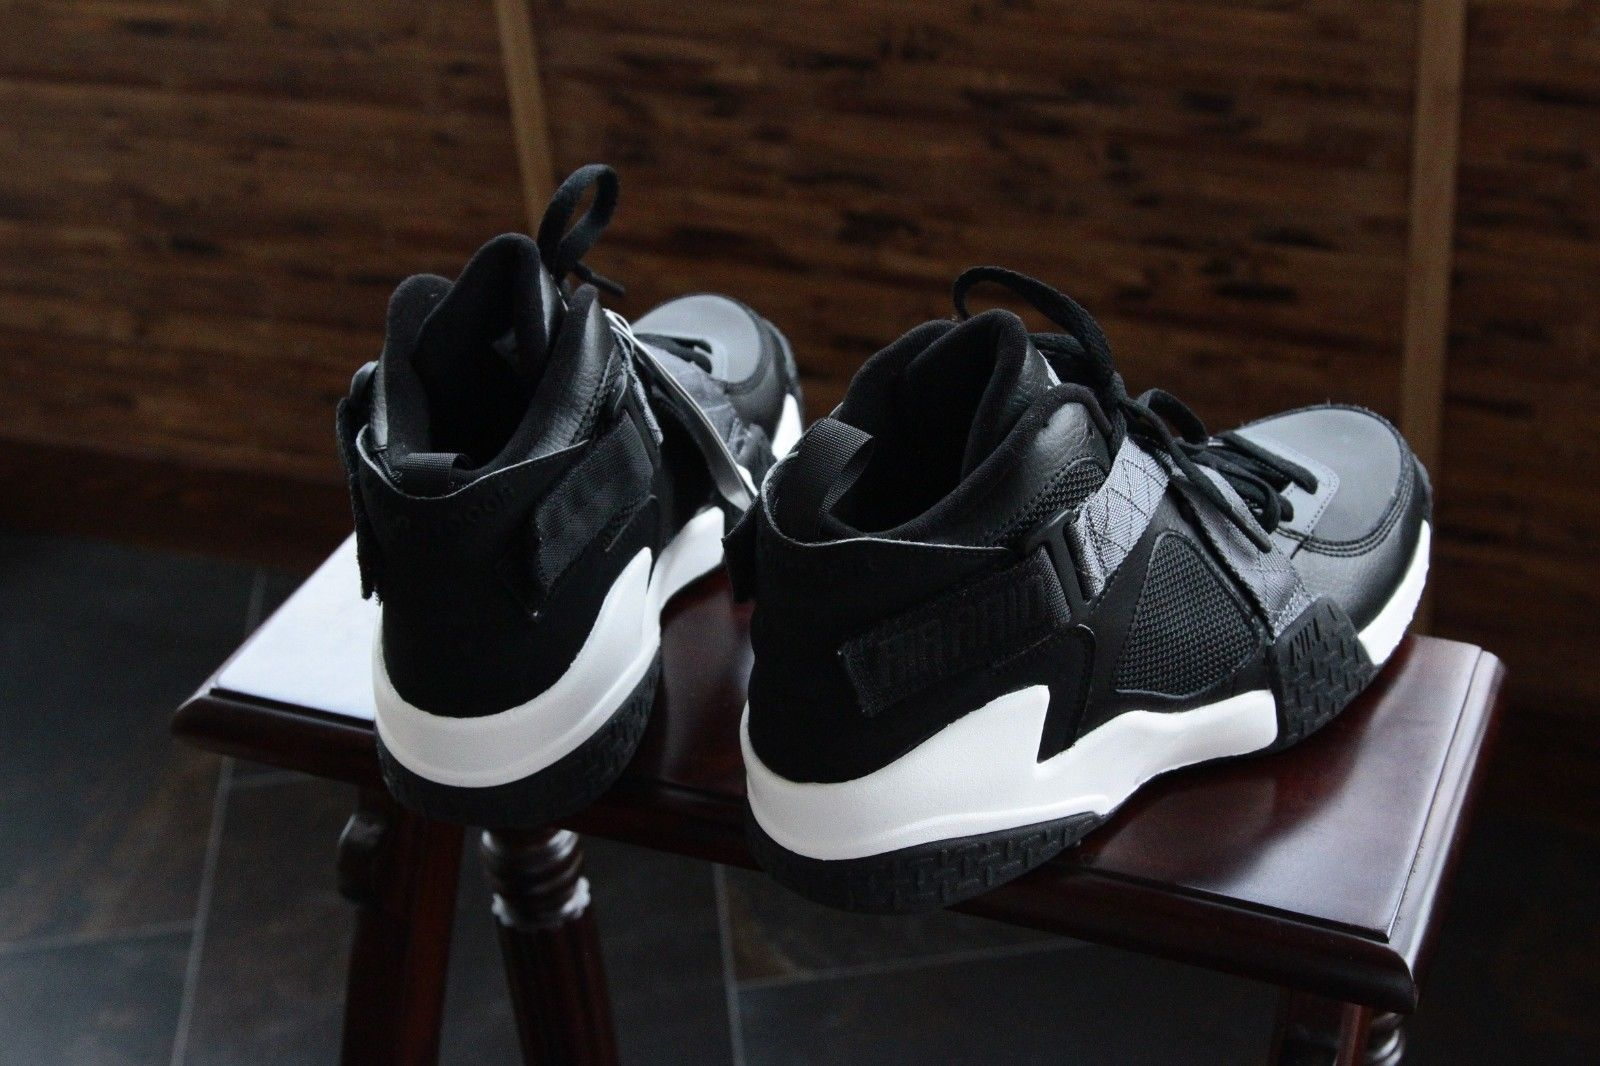 nike-air-raid-black-flint-grey-white-2014-sample-4